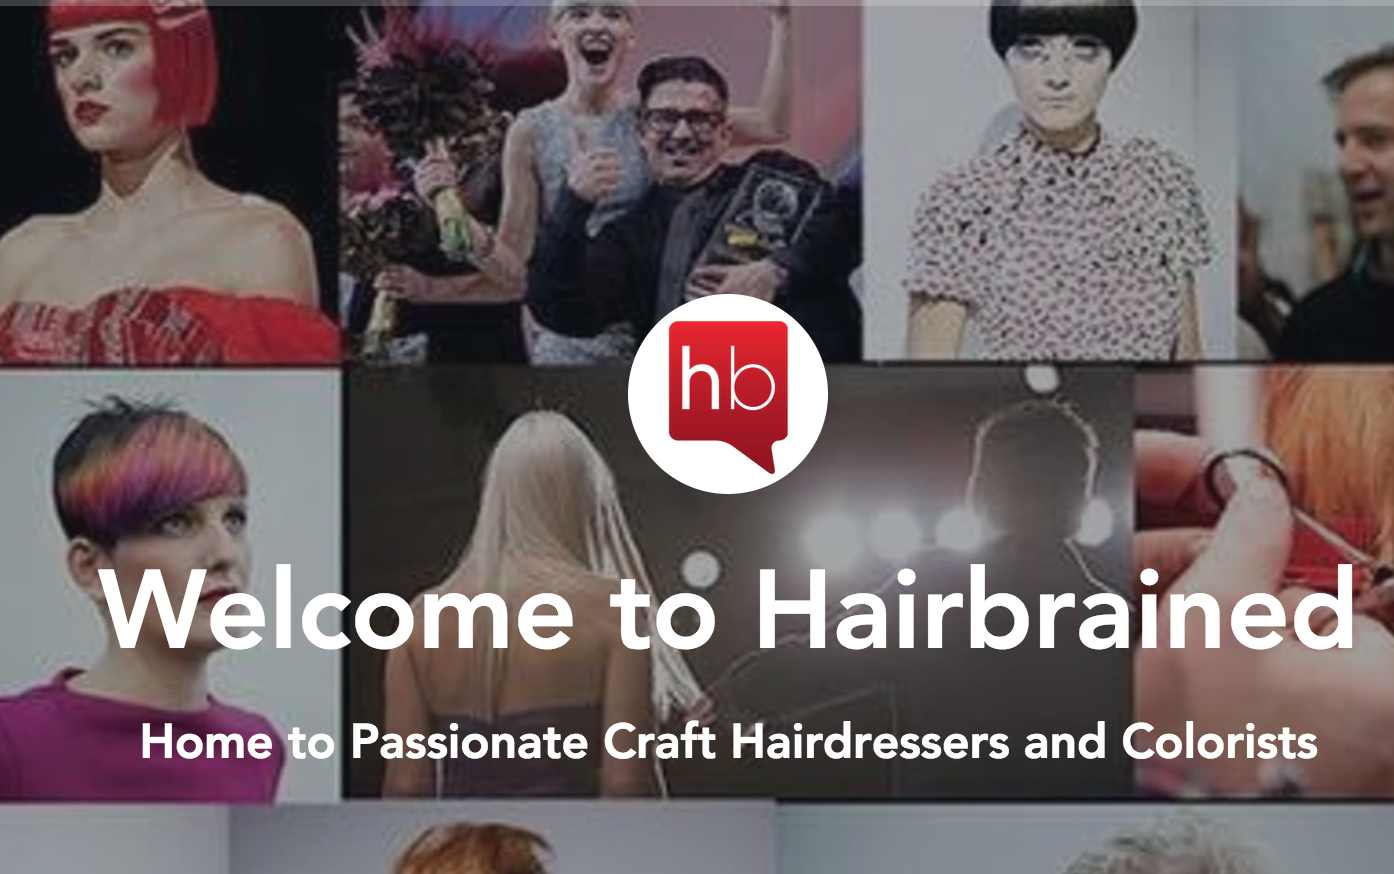 Hairbrained.me - What is Hairbrained?Hairbrained (Hb) is the world's leading digital & social based community for #crafthairdressers and colorists. We exist as a no-cost space for artists, craftsmen, and educators to come together to create, inspire and share.